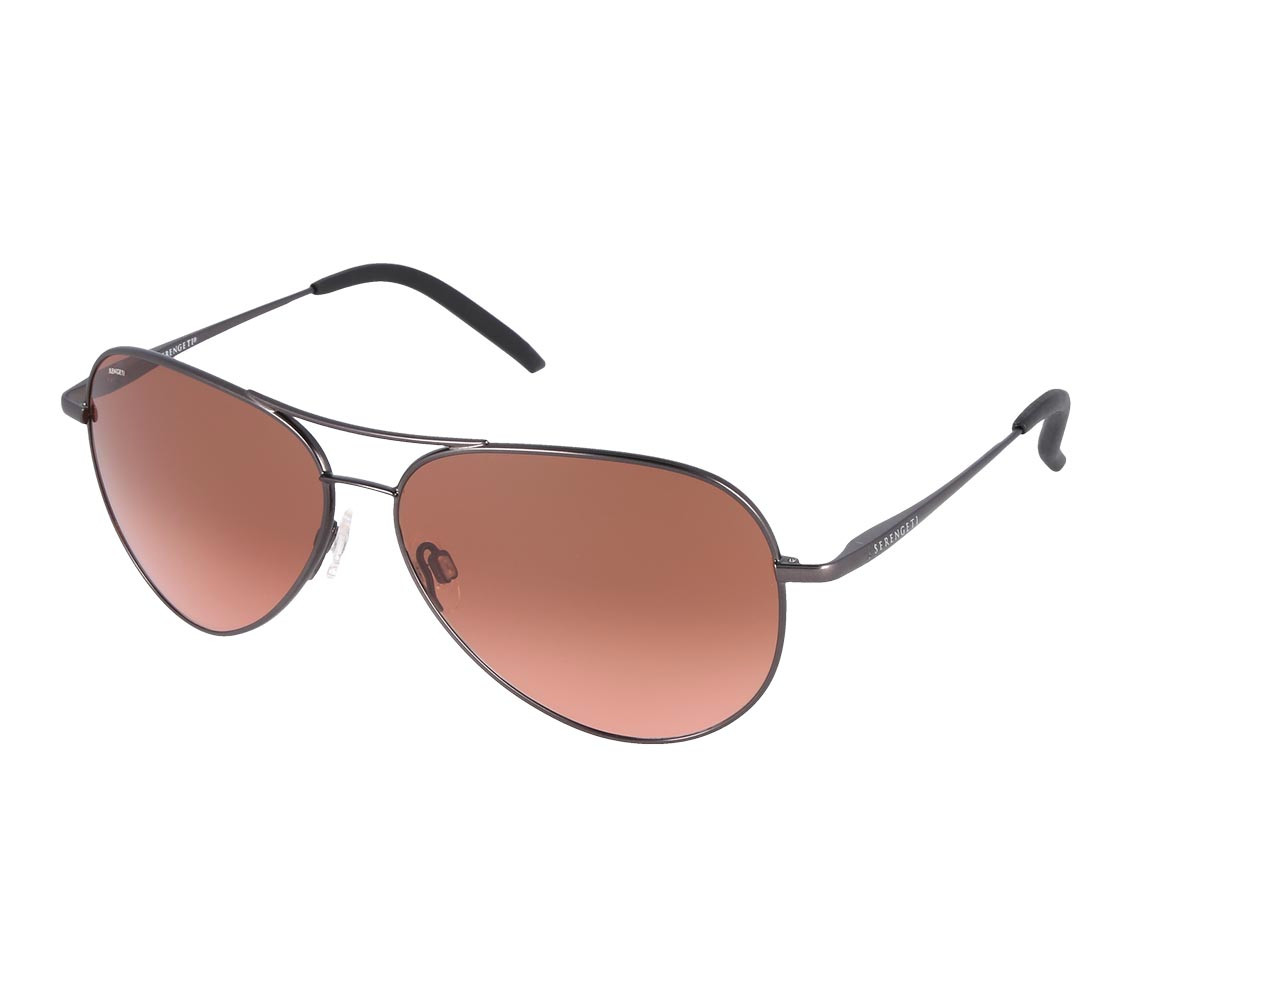 Serengeti Carrara Satin Gunmetal Polarized Driver Polarized